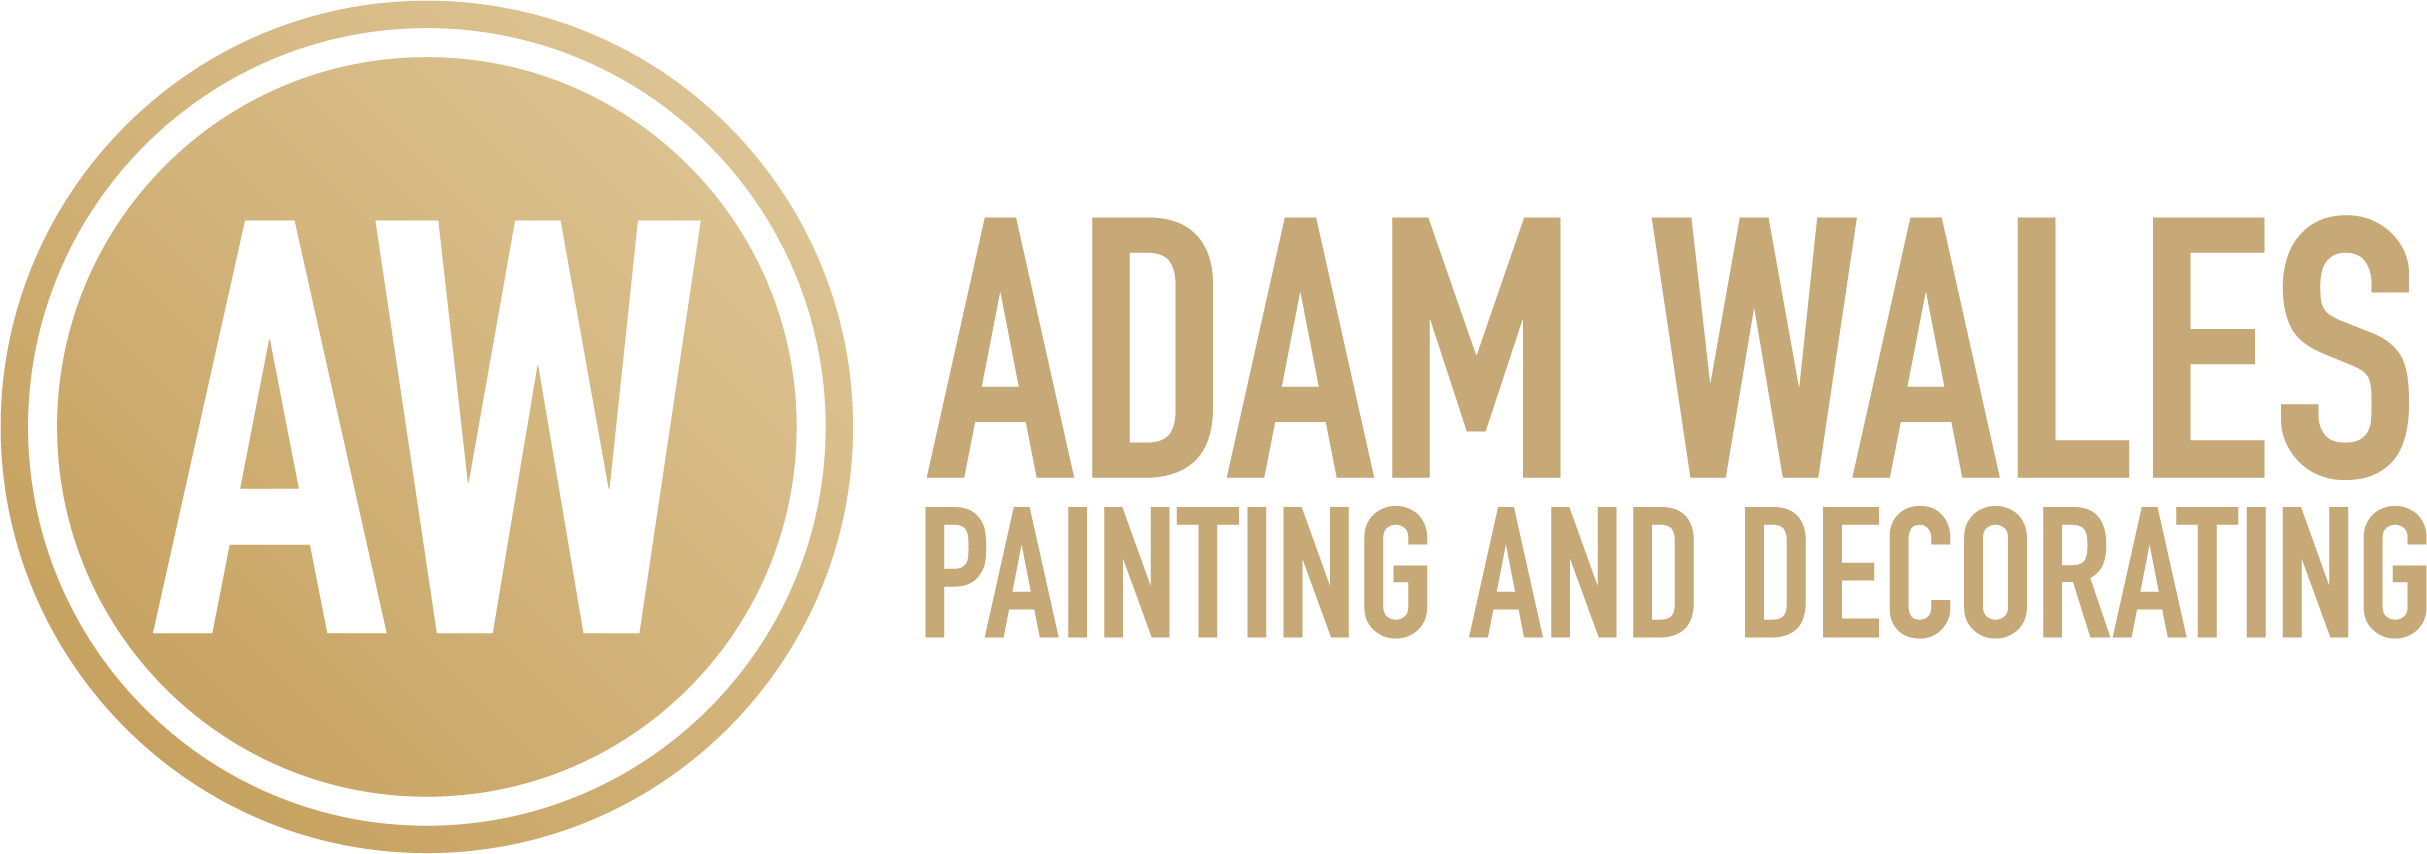 Adam Wales Painting & Decorating